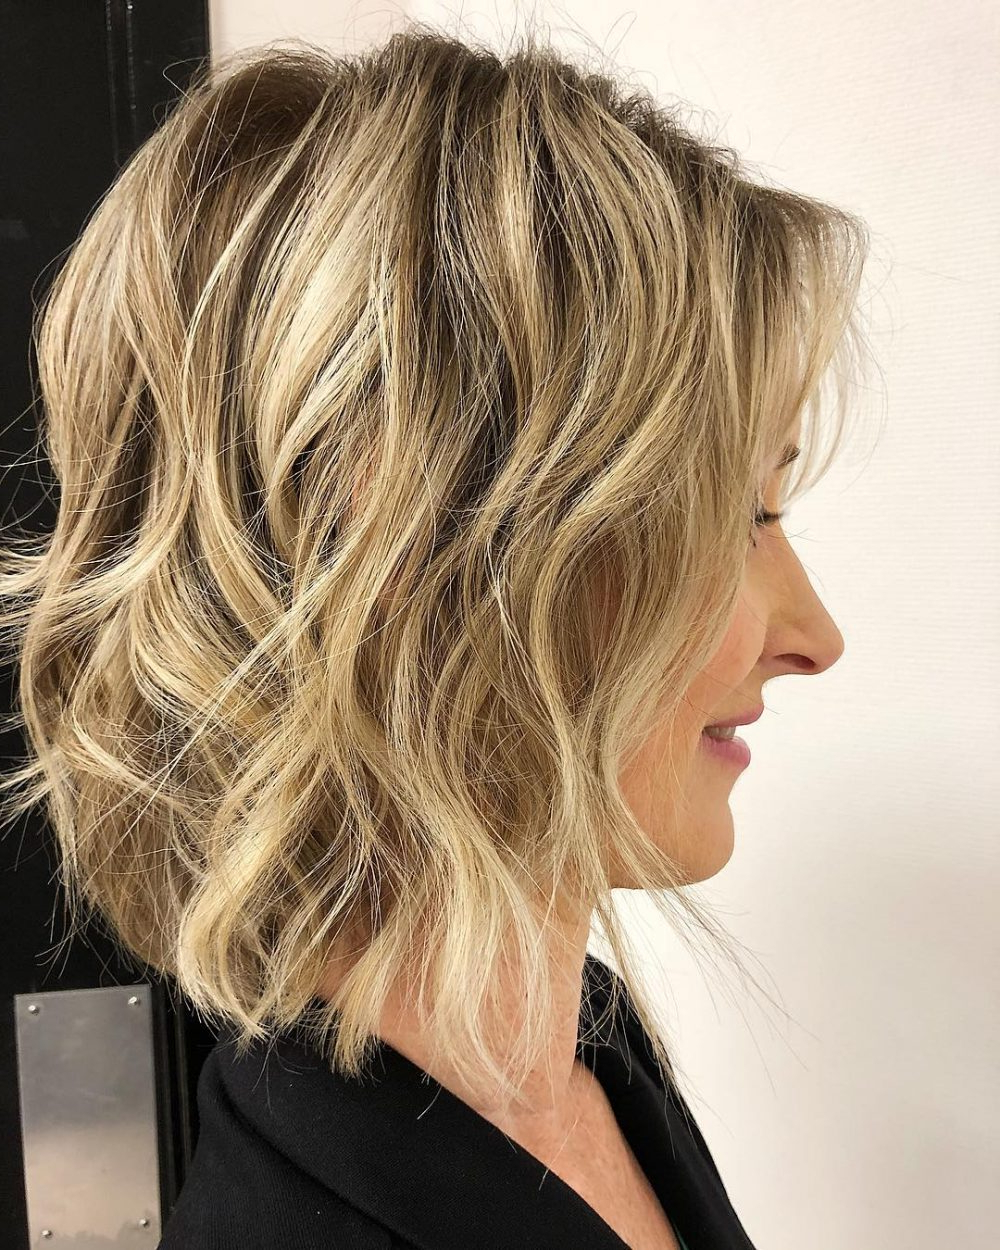 43 Perfect Short Hairstyles For Fine Hair In 2018 Inside Trendy Short Hairstyles For Thin Hair (View 4 of 25)